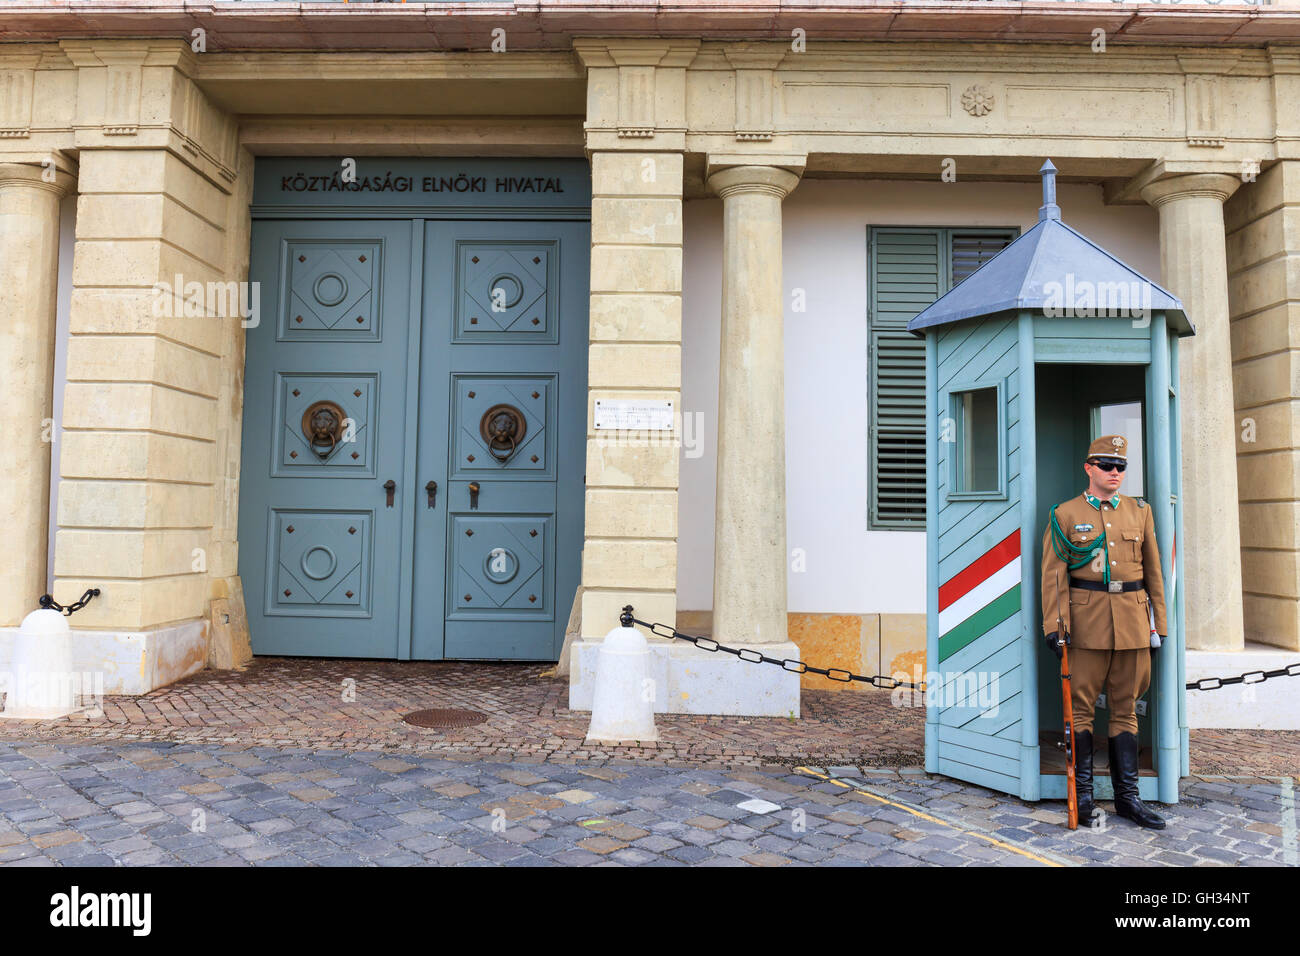 BUDAPEST, HUNGARY - JULY 24, 2014 : Ceremonial guard at the Presidential Palace. They guard the entrance of the Stock Photo